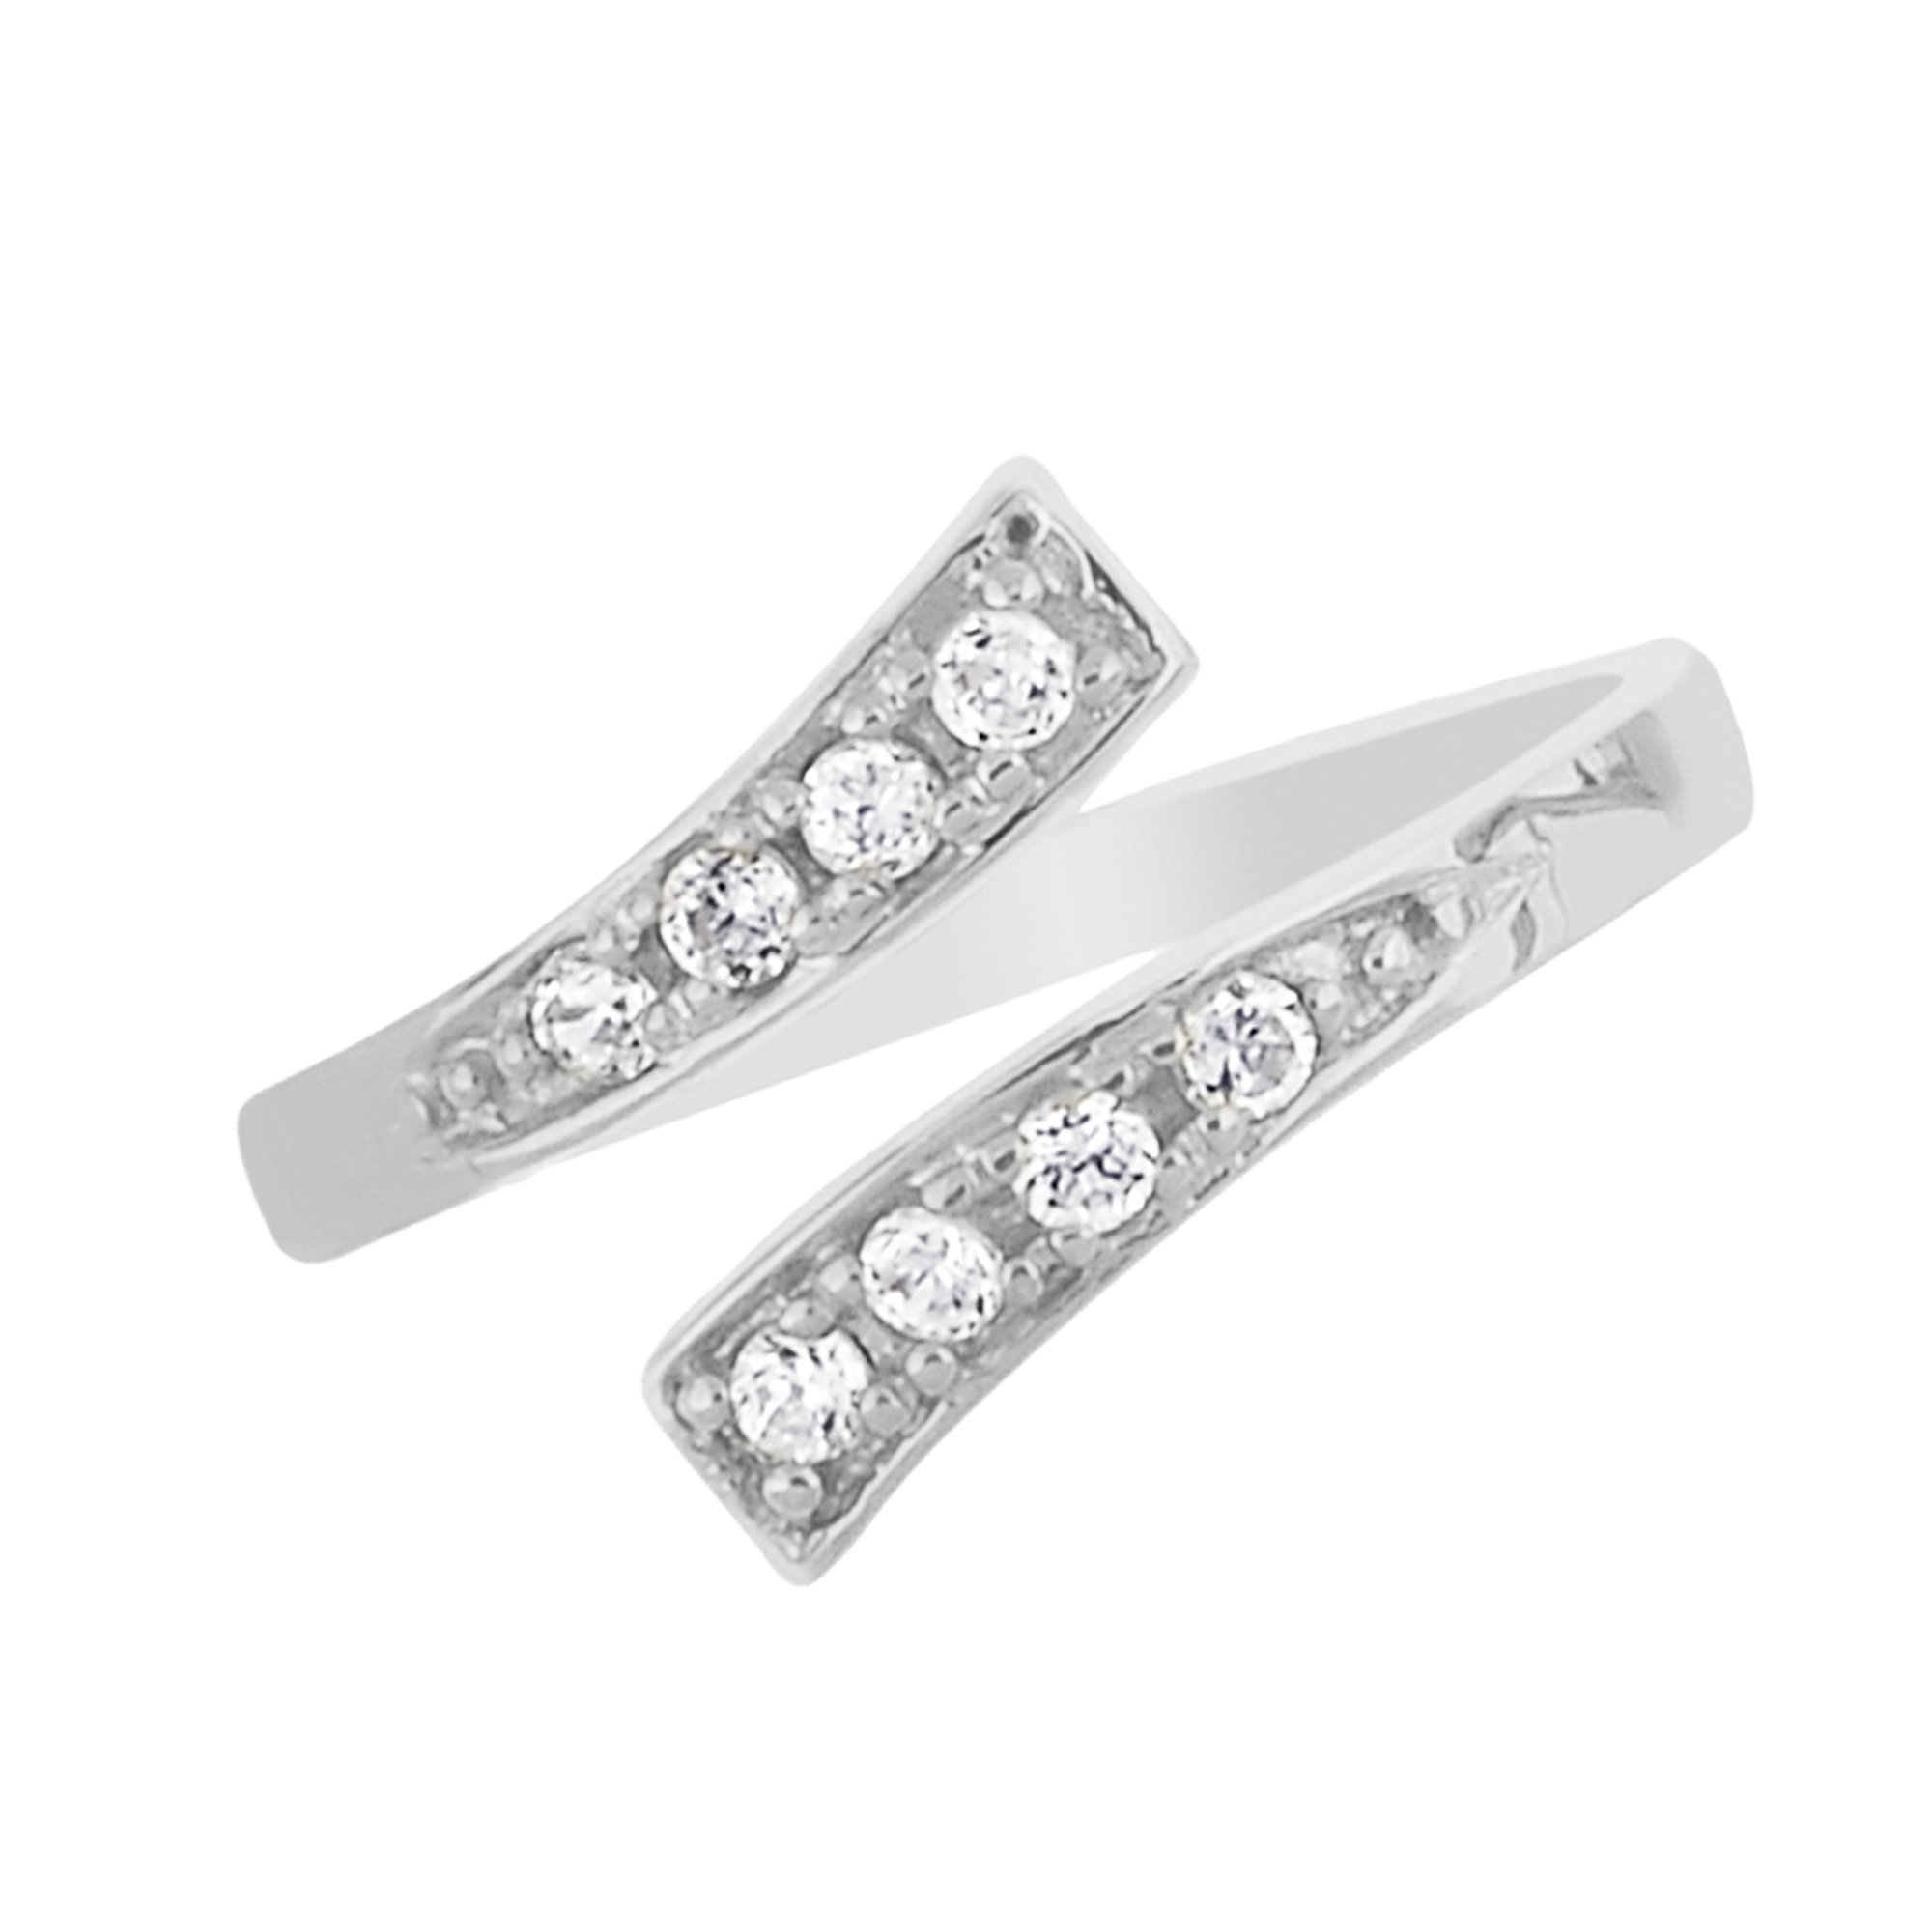 Ritastephens 10K White Gold Crossover Shiny CZ Cubic Zirconia Toe Ring or Ring Adjustable by Ritastephens